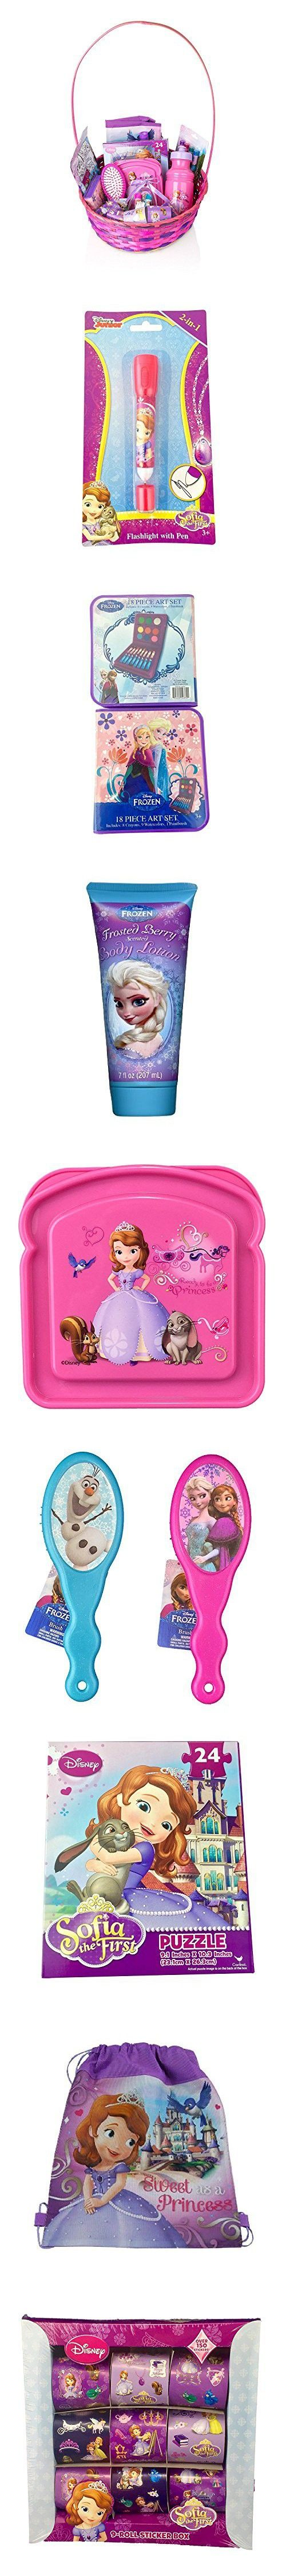 Disney Frozen Sofia The First Baby Girl Gift Basket, 20+ Piece Bundle Filled Basket of Fun Gift Set (3-10 Years Old Girls), Perfect for Birthdays, Easter, Christmas, Get Well, or Other Occasion!